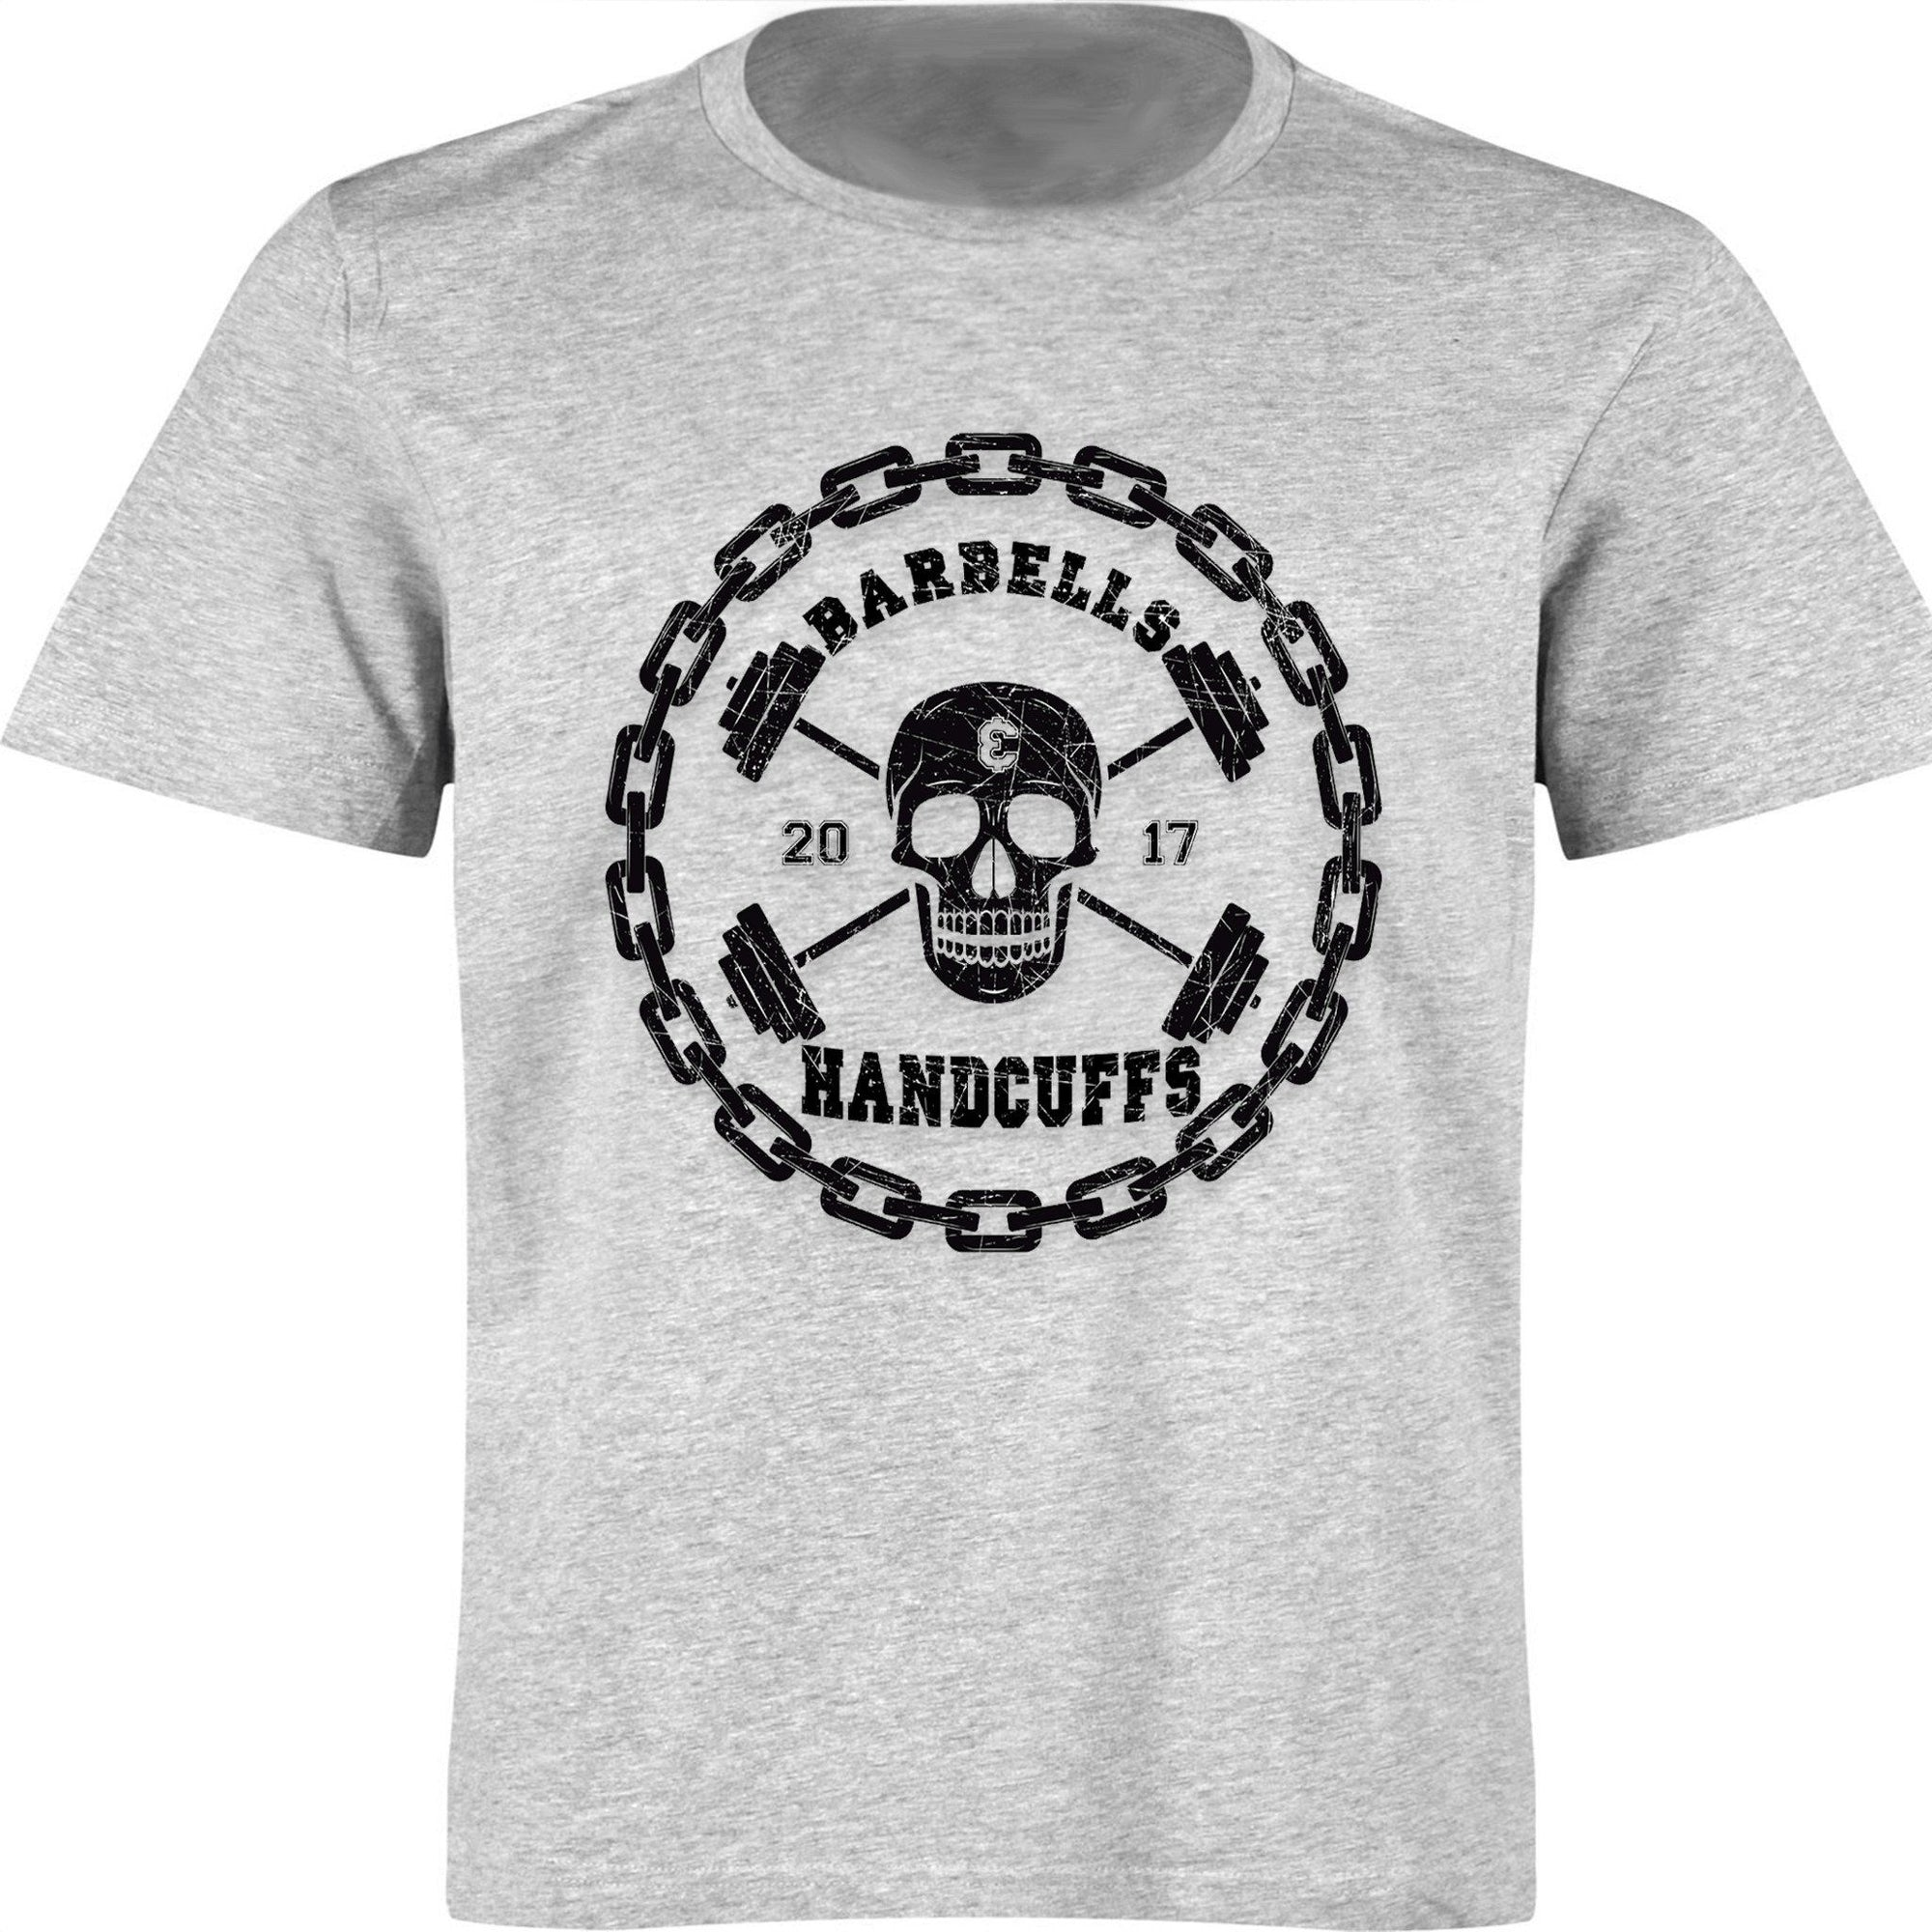 BARBELLS & HANDCUFFS SKULL LOGO T-SHIRT